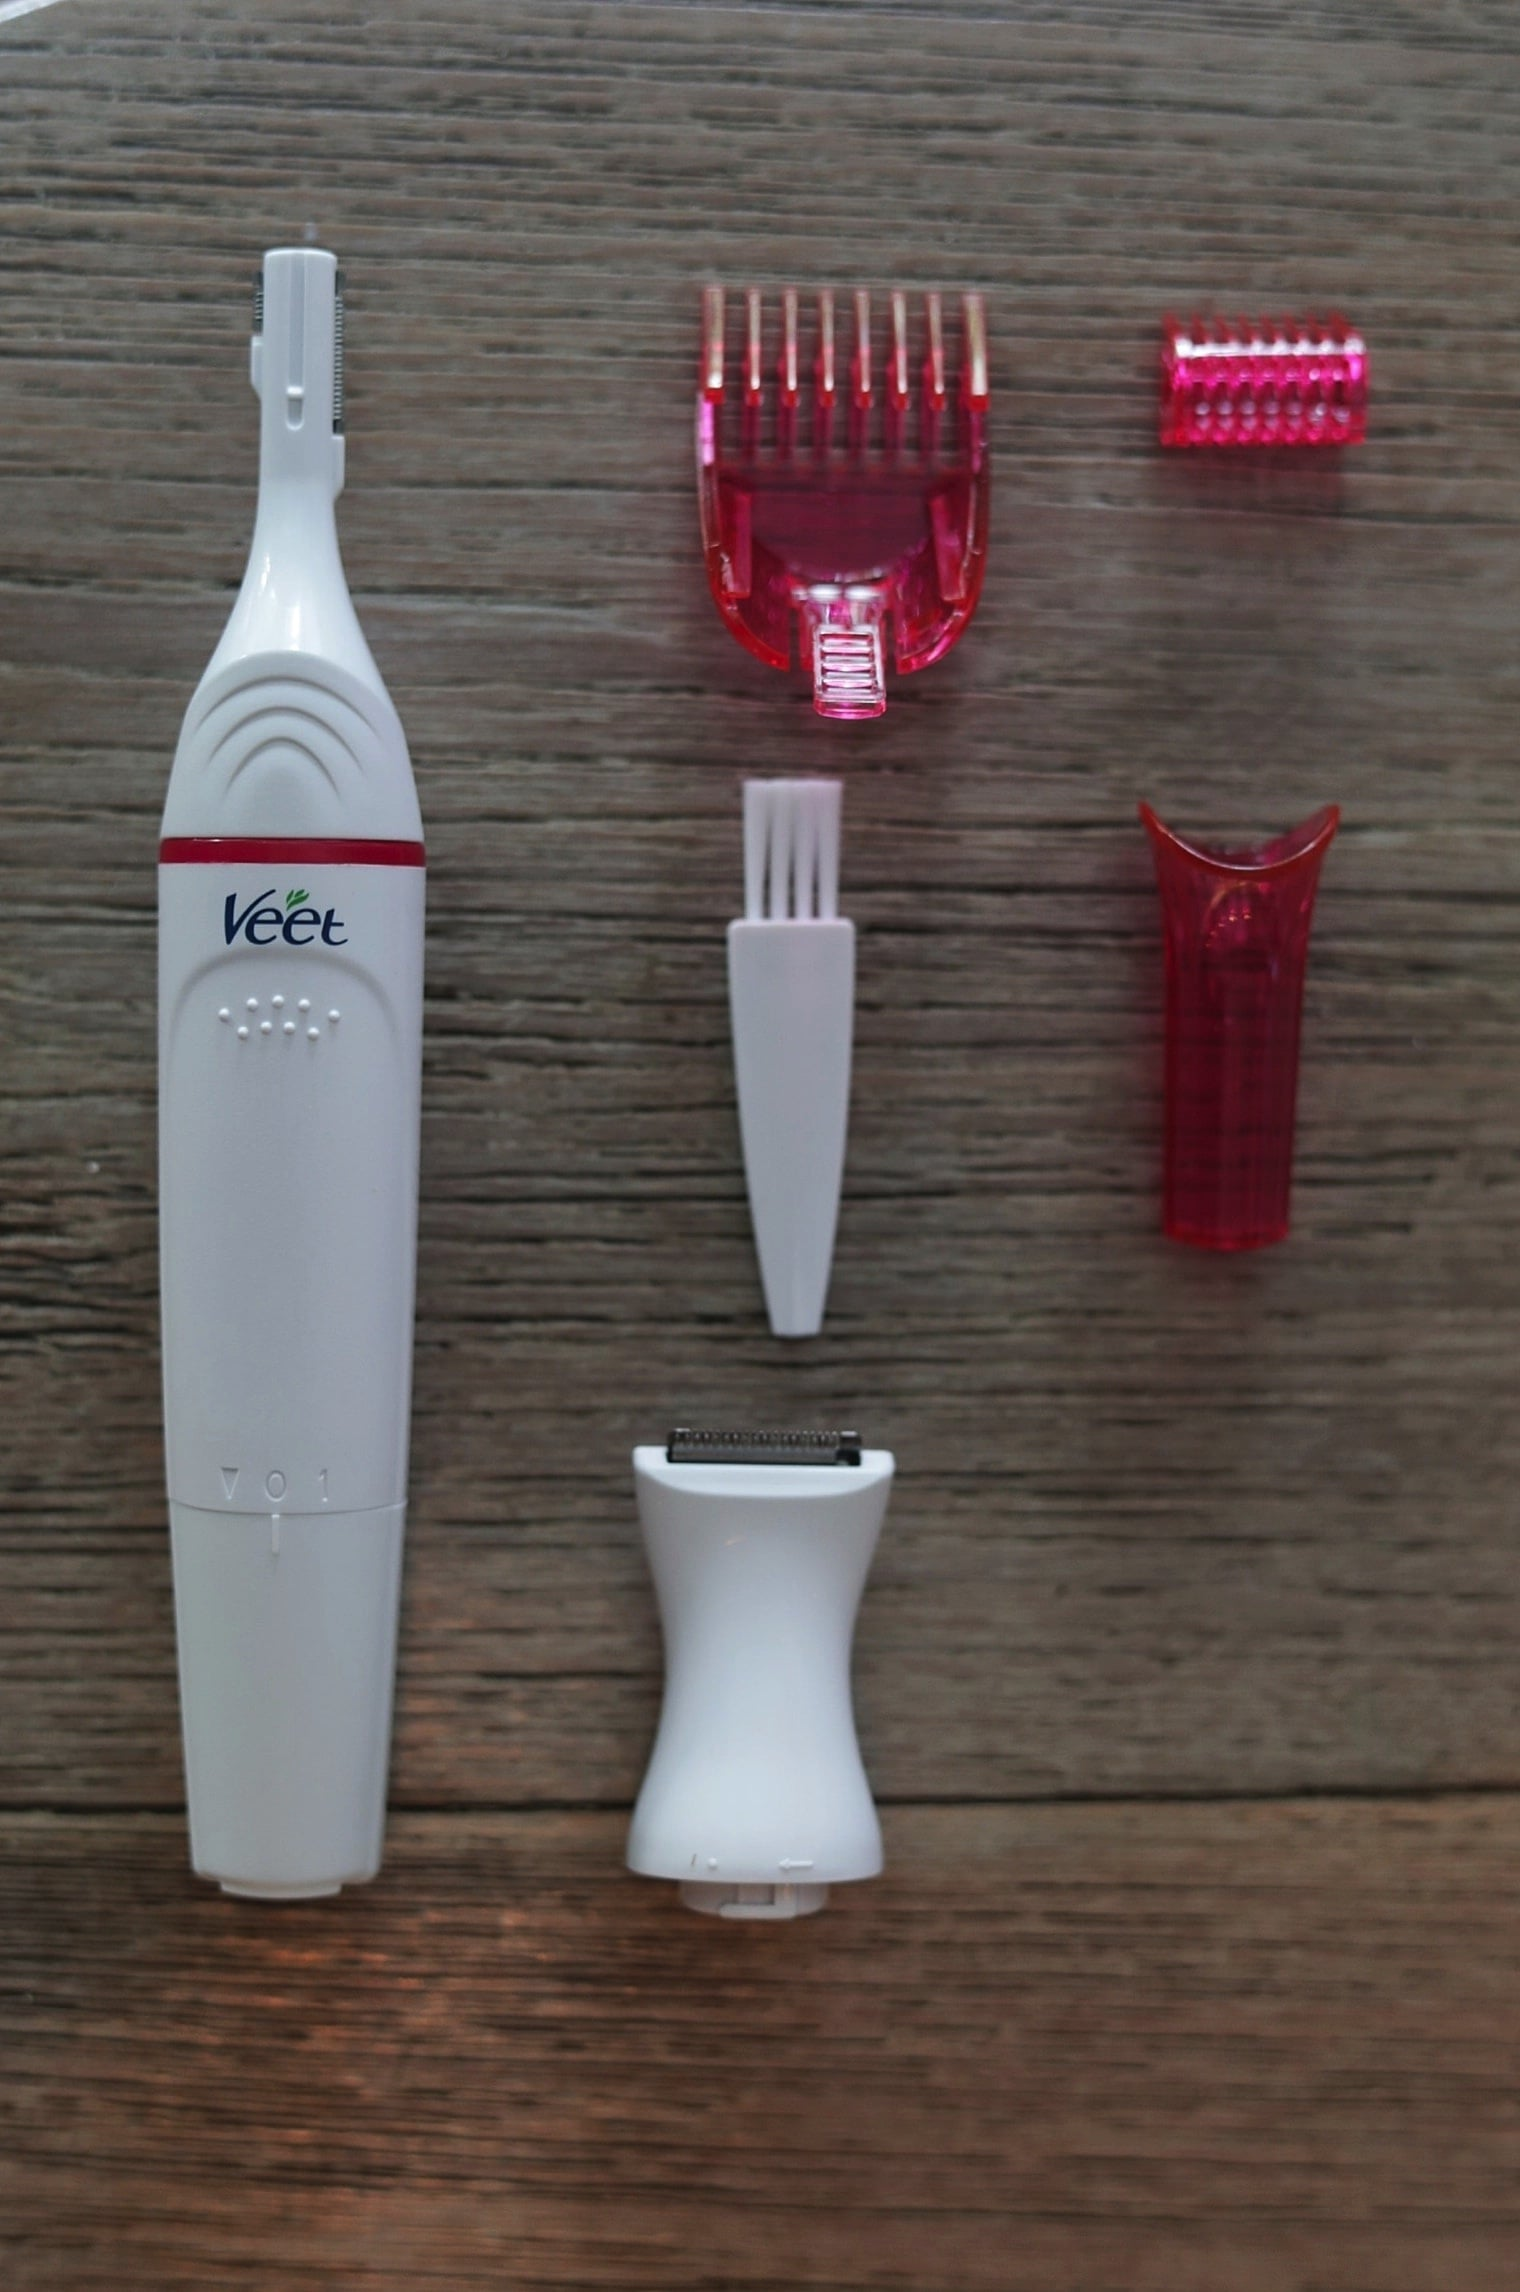 Veet Sensitive Touch Electric Trimmer for Women review